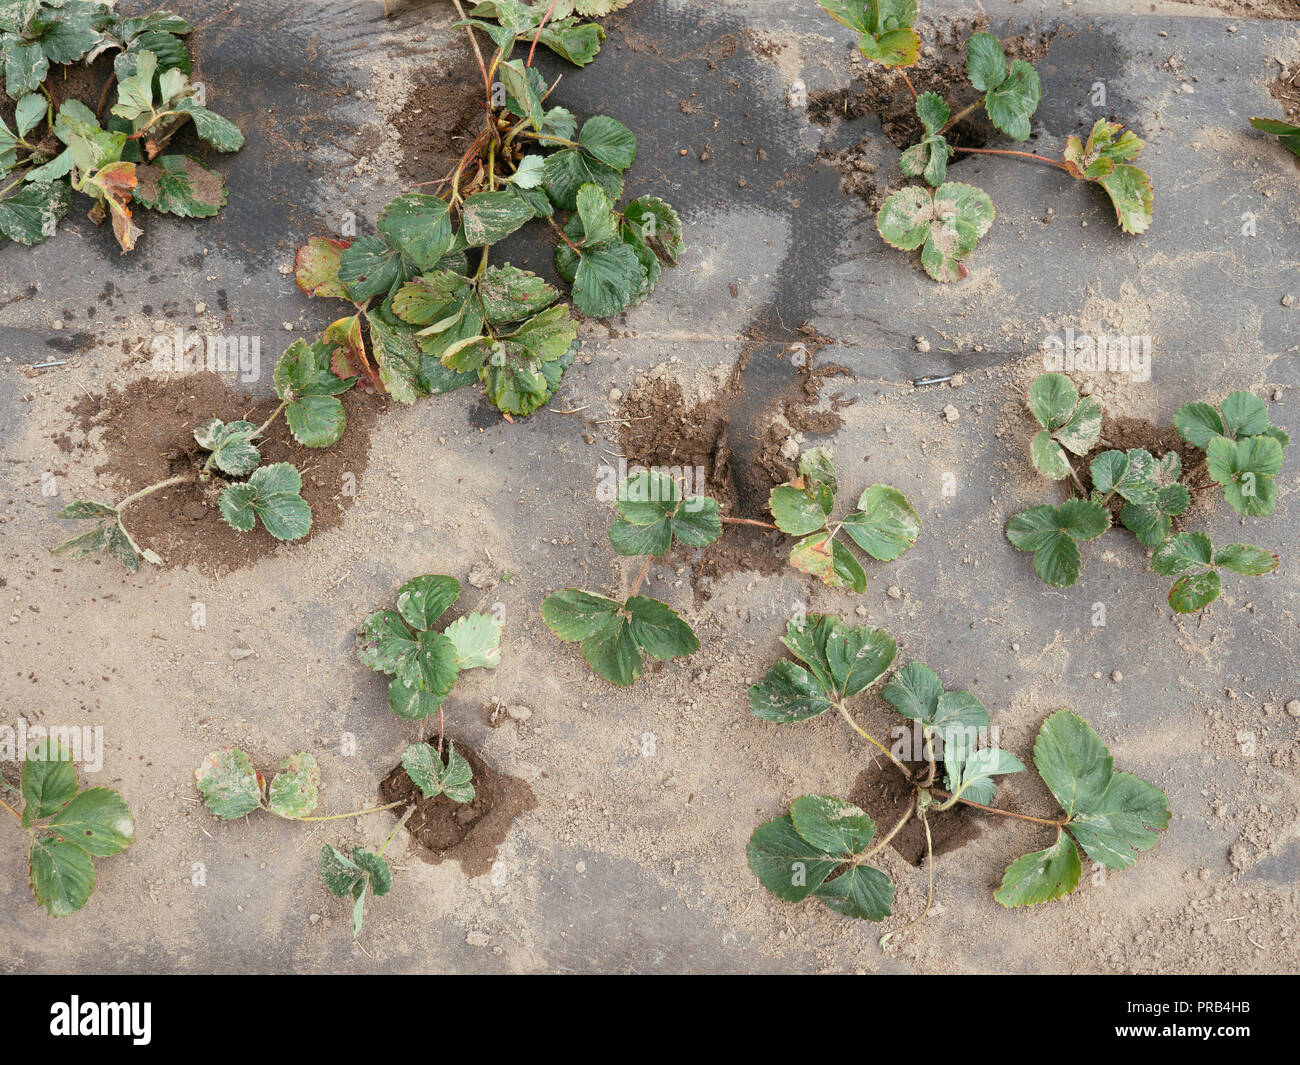 Strawberries planted in a hill system with 3 rows, covered with a biodegradable and compostable weed suppression fabric. Stock Photo